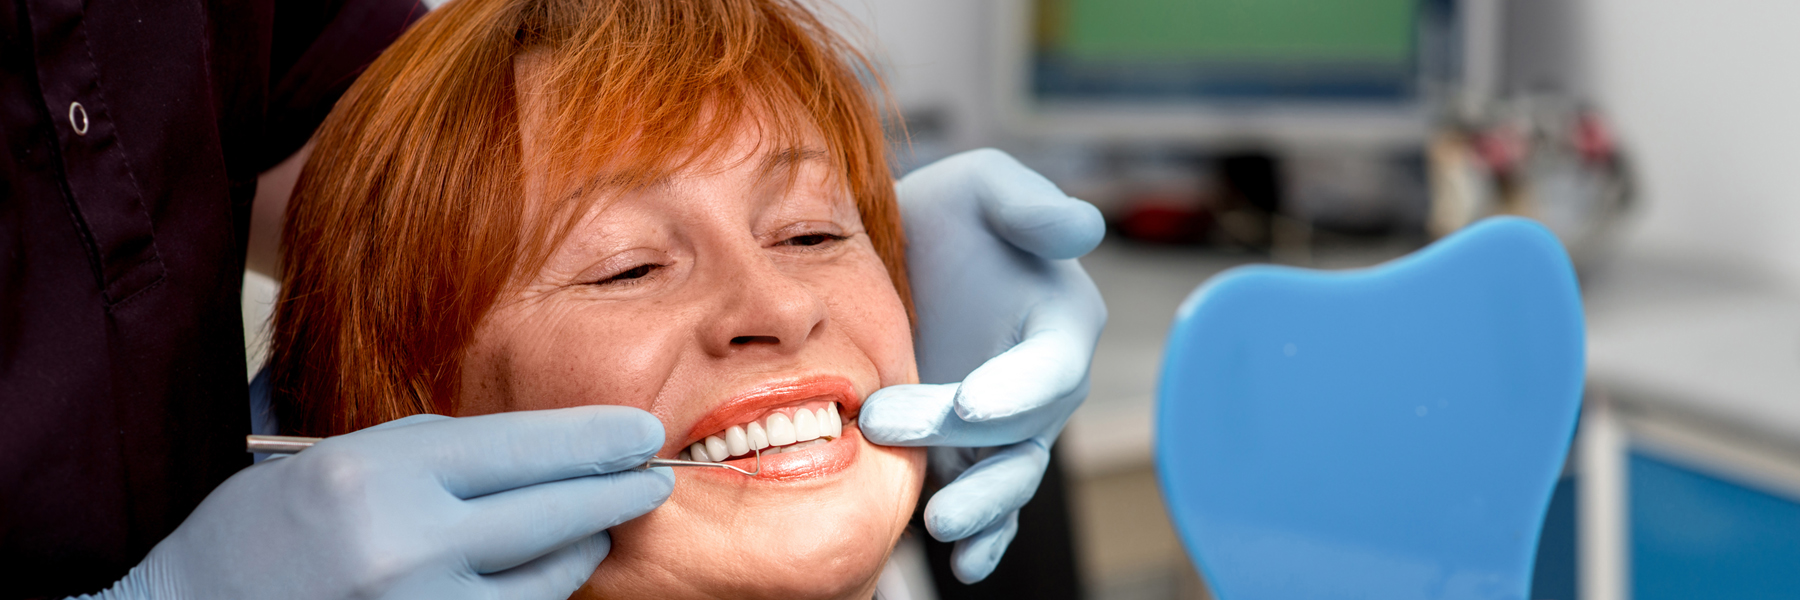 After Dental Implant Surgery